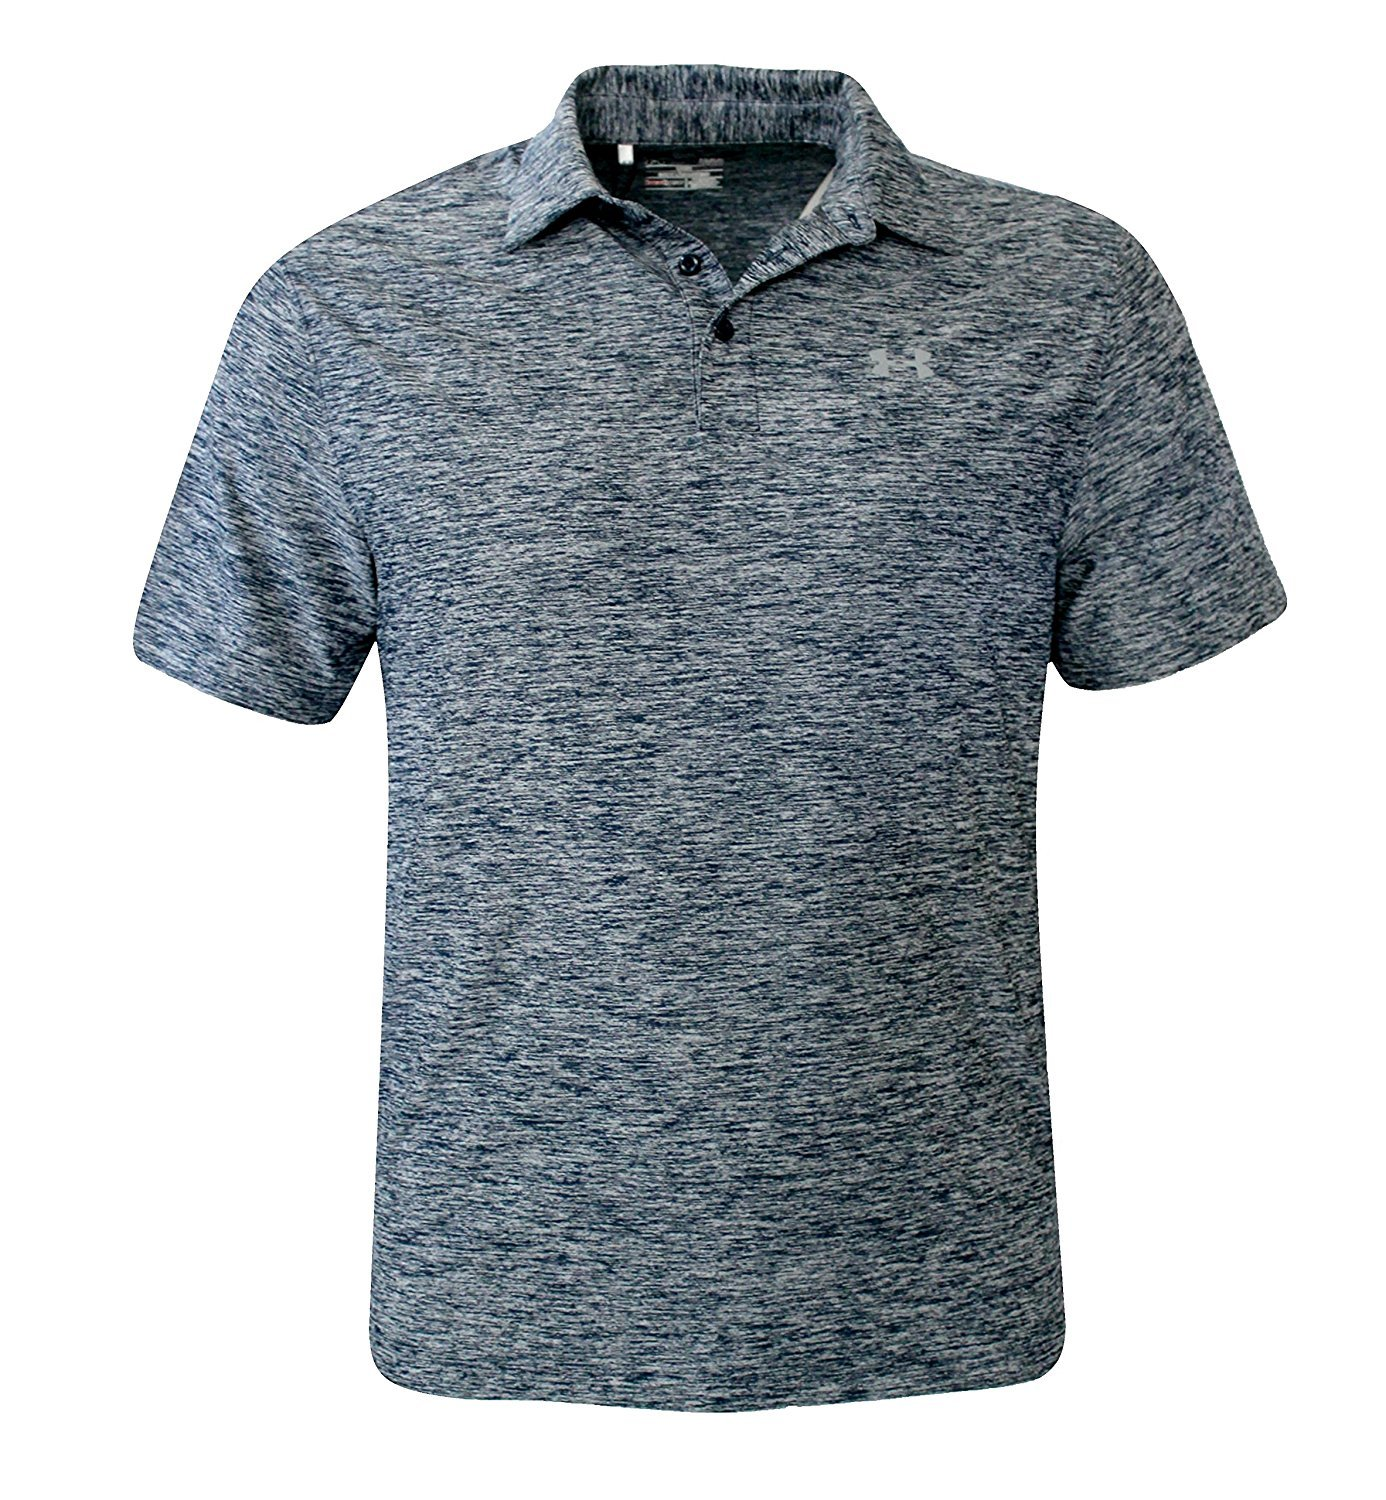 Under Armour Elevated Heather Polo Tee - Mens (S, Academy/Graphite 408)